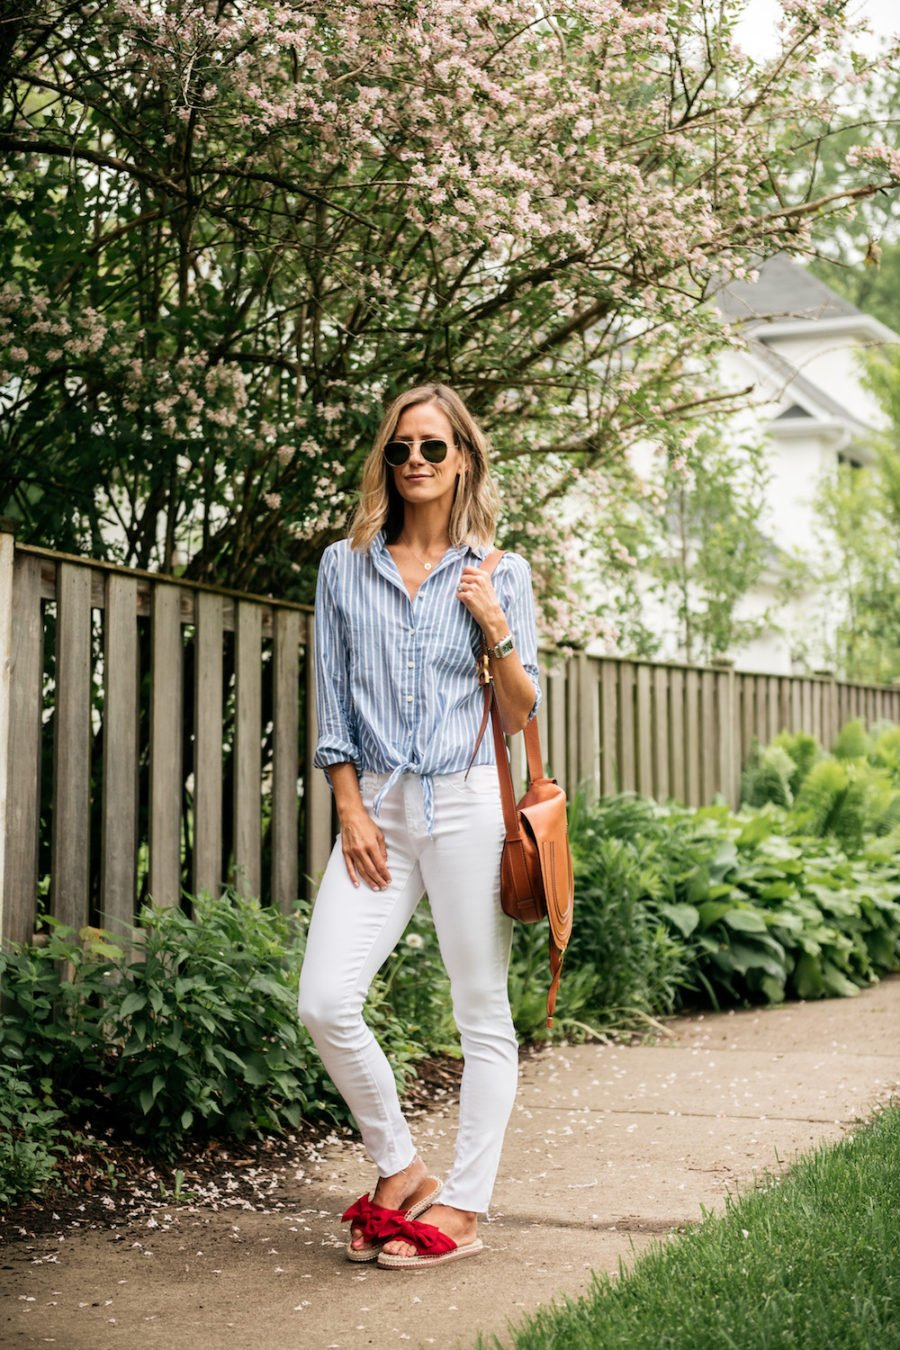 10 Easy Summer Outfit Ideas, striped blouse and white jeans